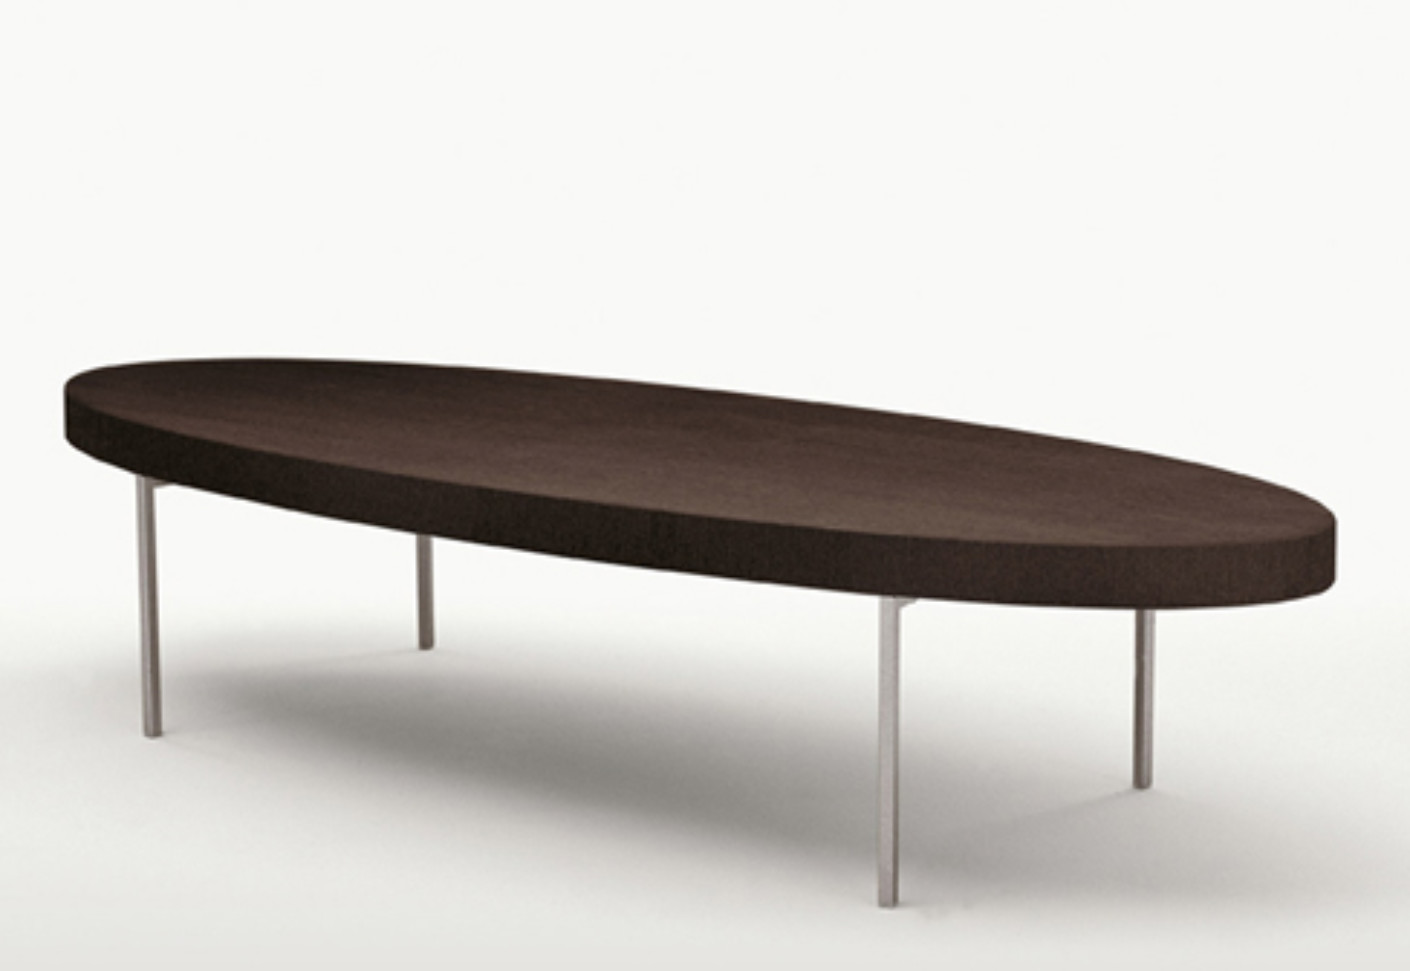 ebe coffee table oval by maxalto stylepark. Black Bedroom Furniture Sets. Home Design Ideas